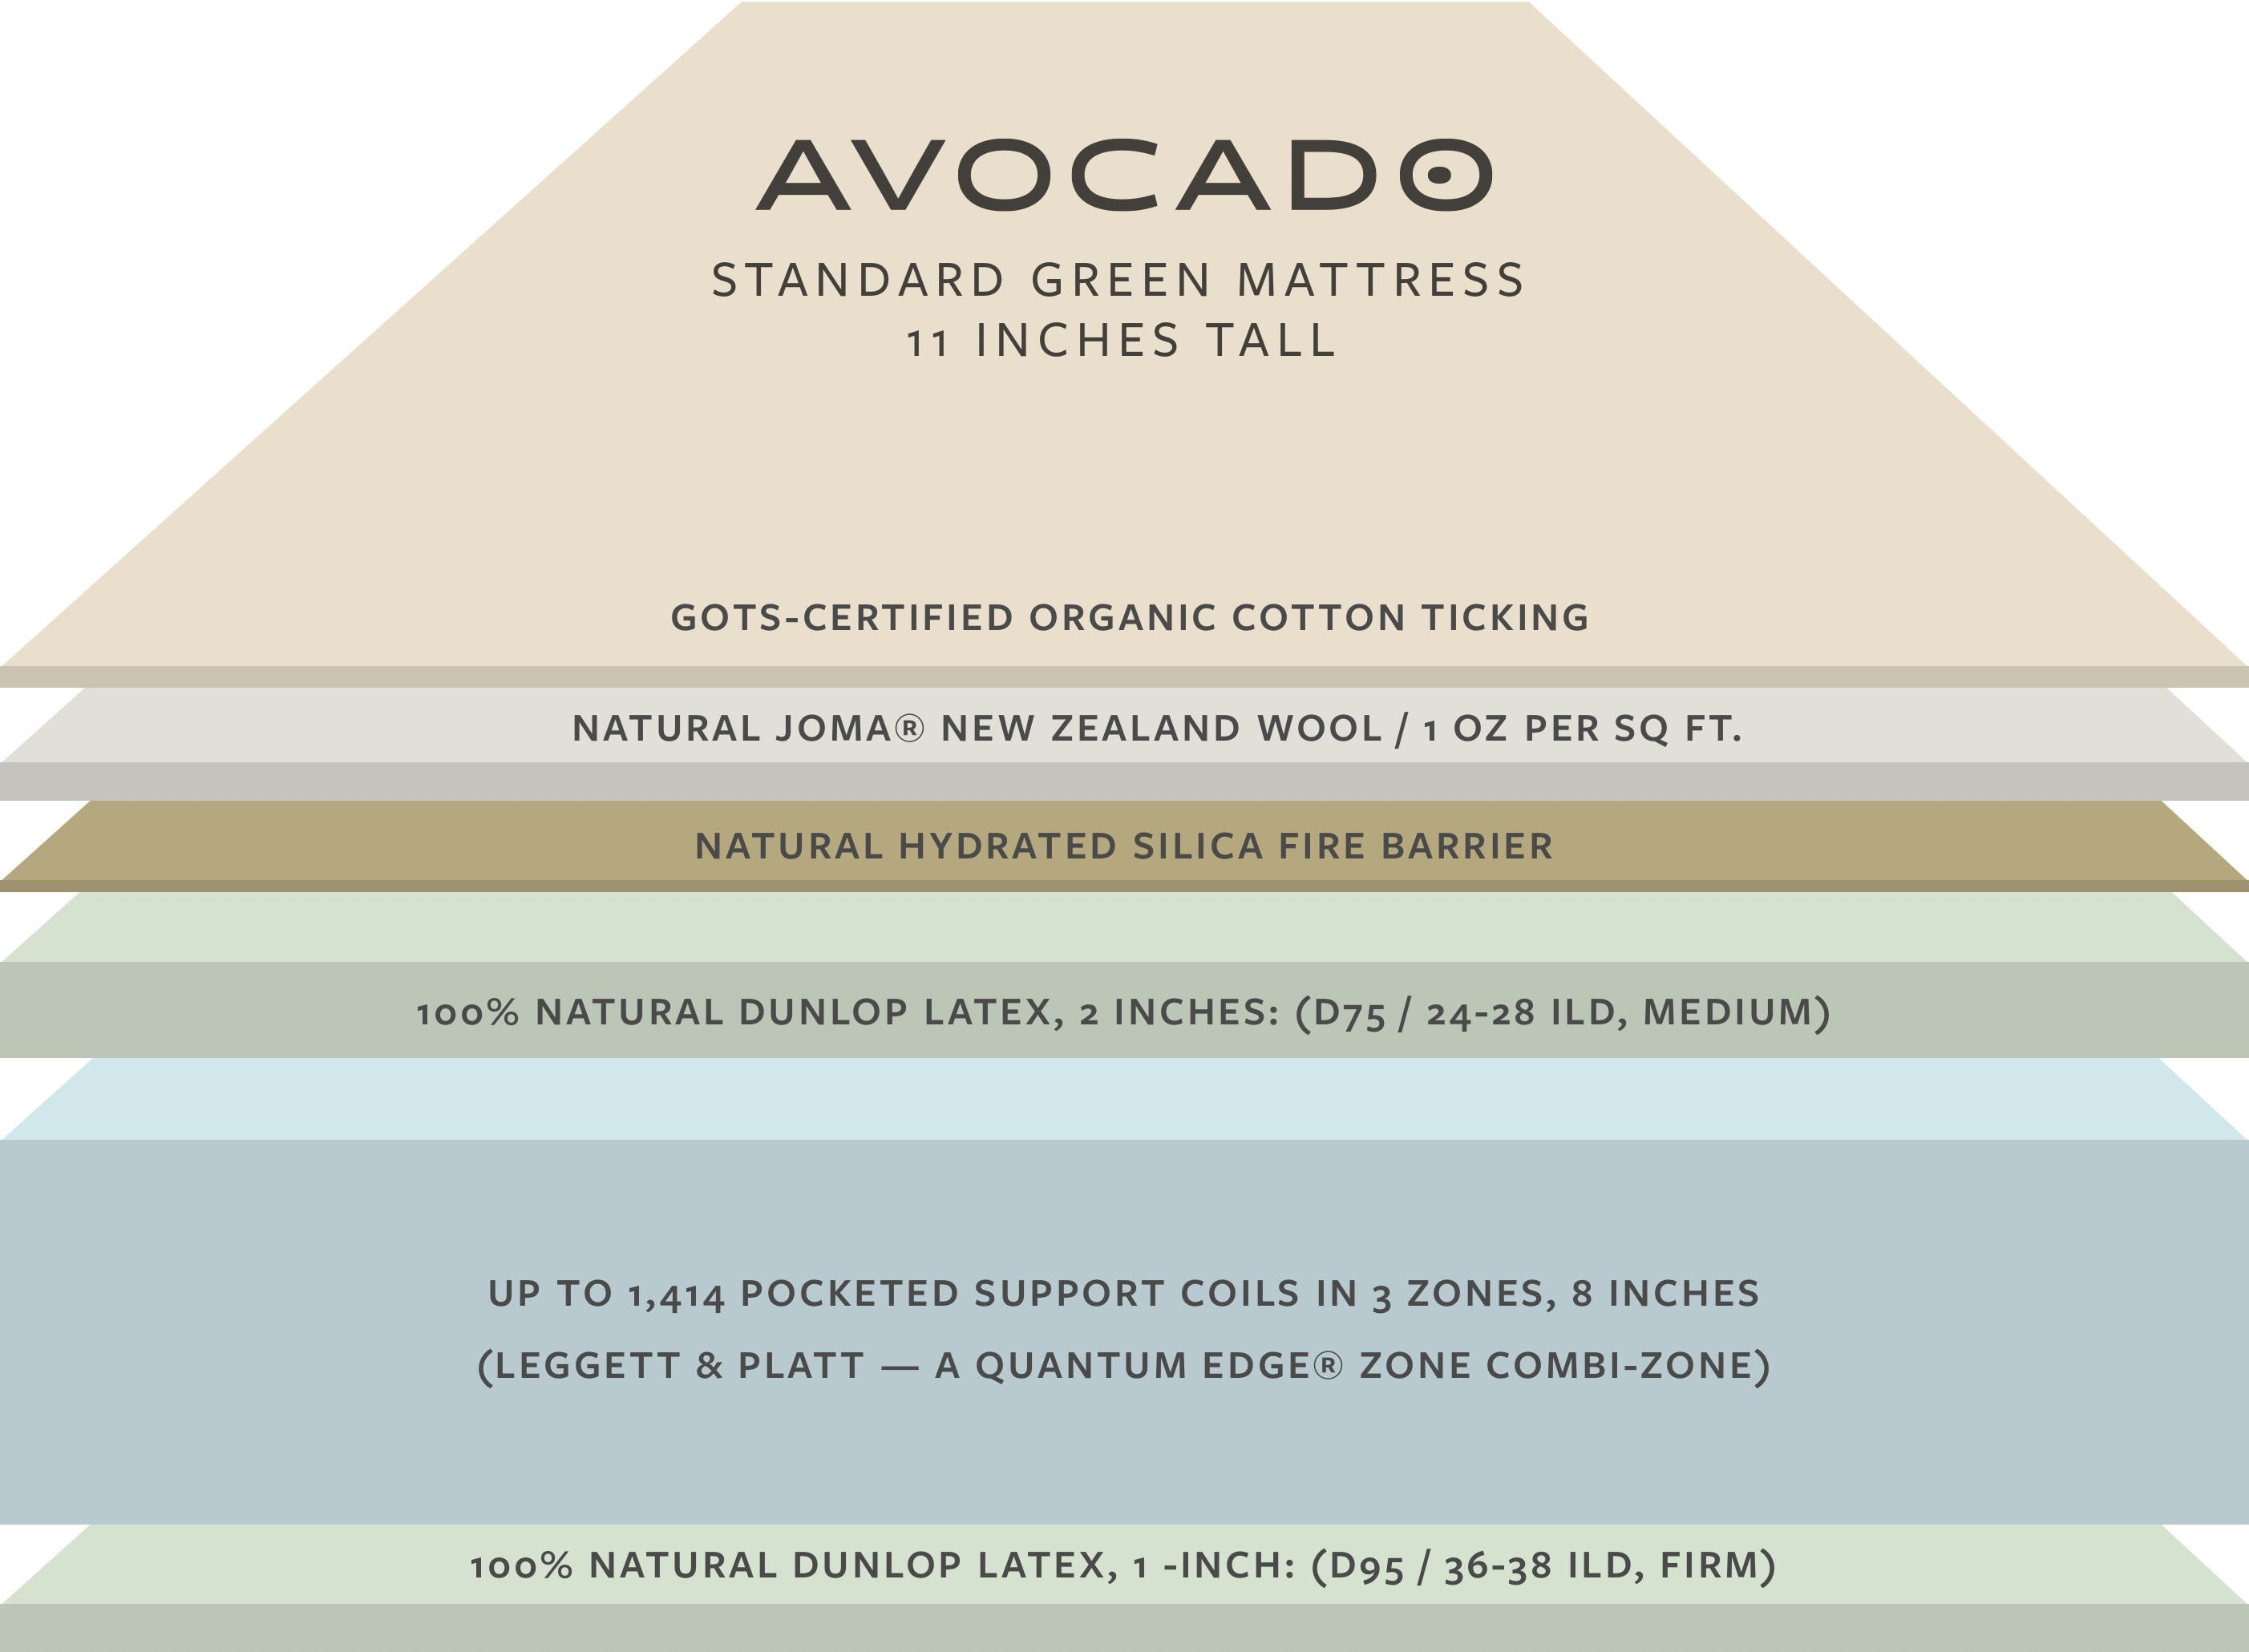 Illustration showing layers inside the Avocado mattress